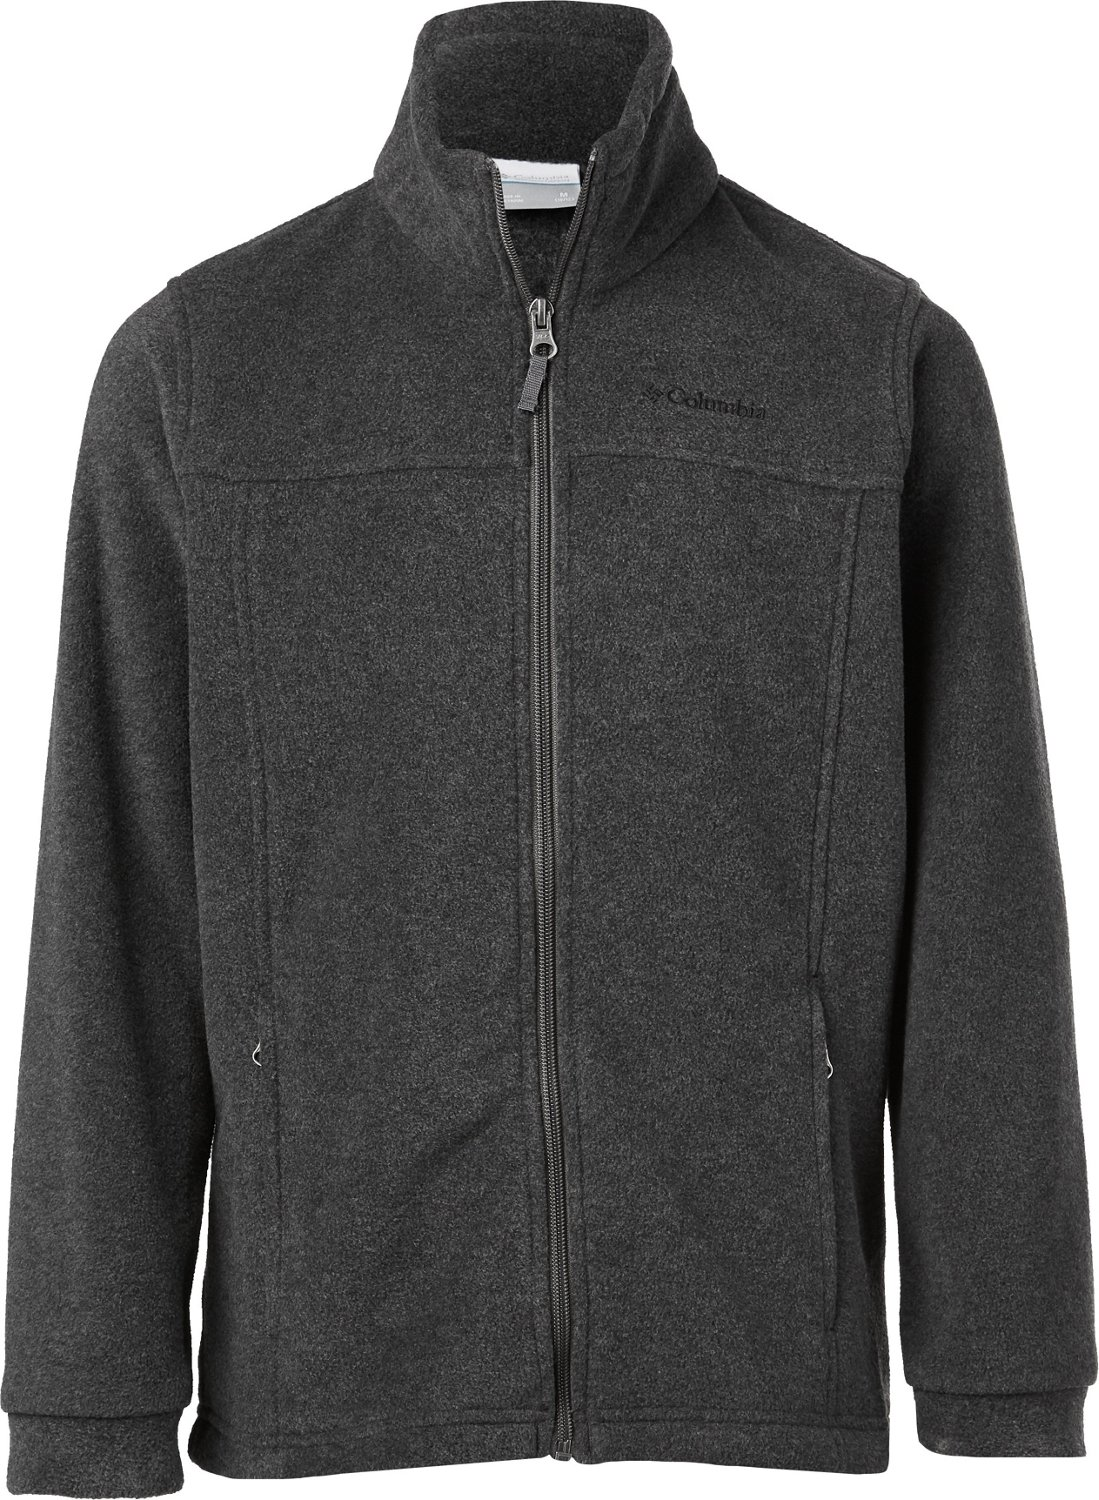 0d67753ea Columbia Sportswear Boys' Steens Mountain II Fleece Jacket